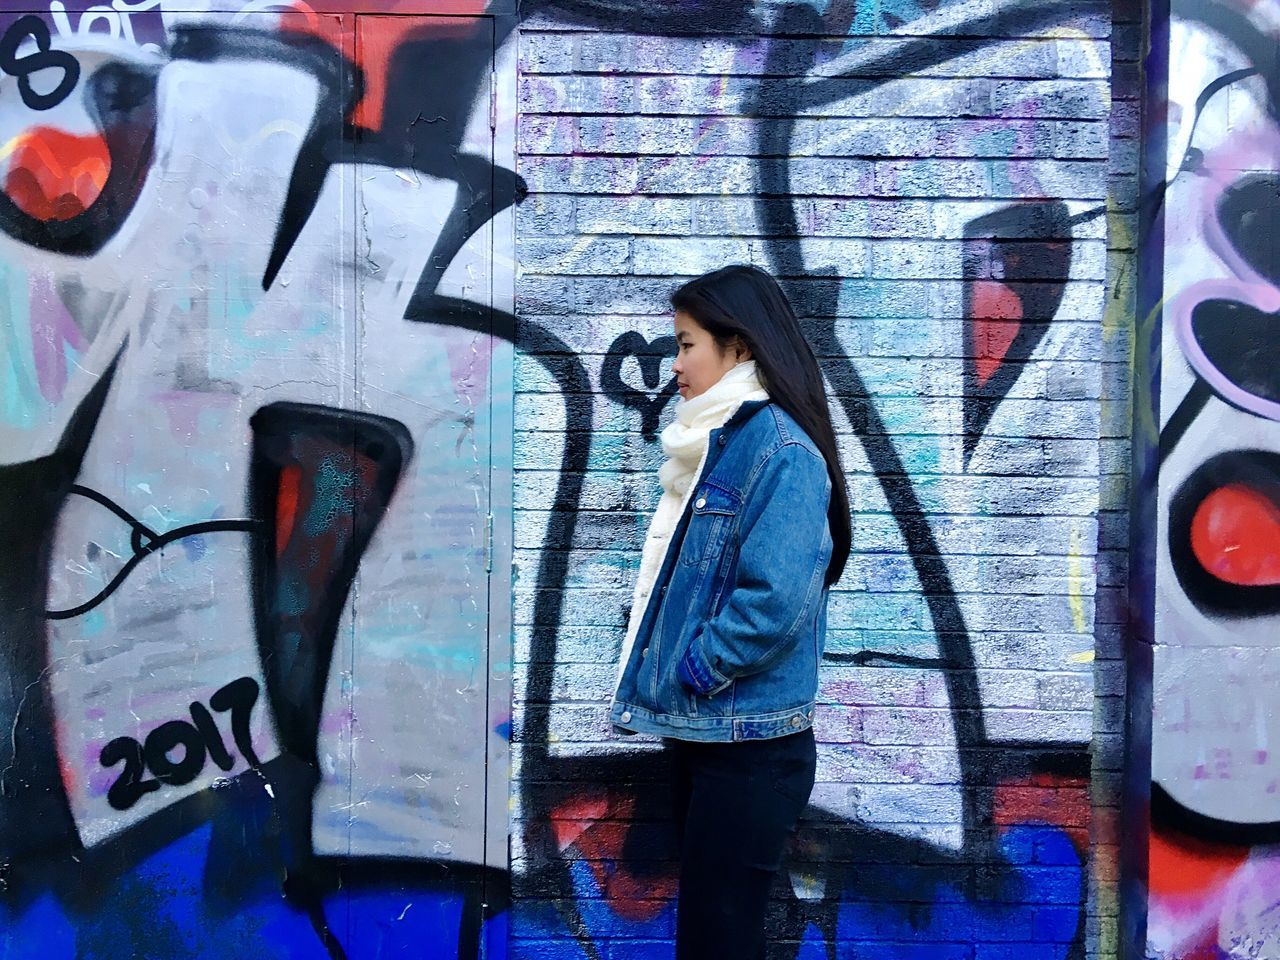 graffiti, one person, young adult, casual clothing, real people, black hair, street art, lifestyles, leisure activity, young women, standing, multi colored, side view, outdoors, day, one young woman only, adult, people, adults only